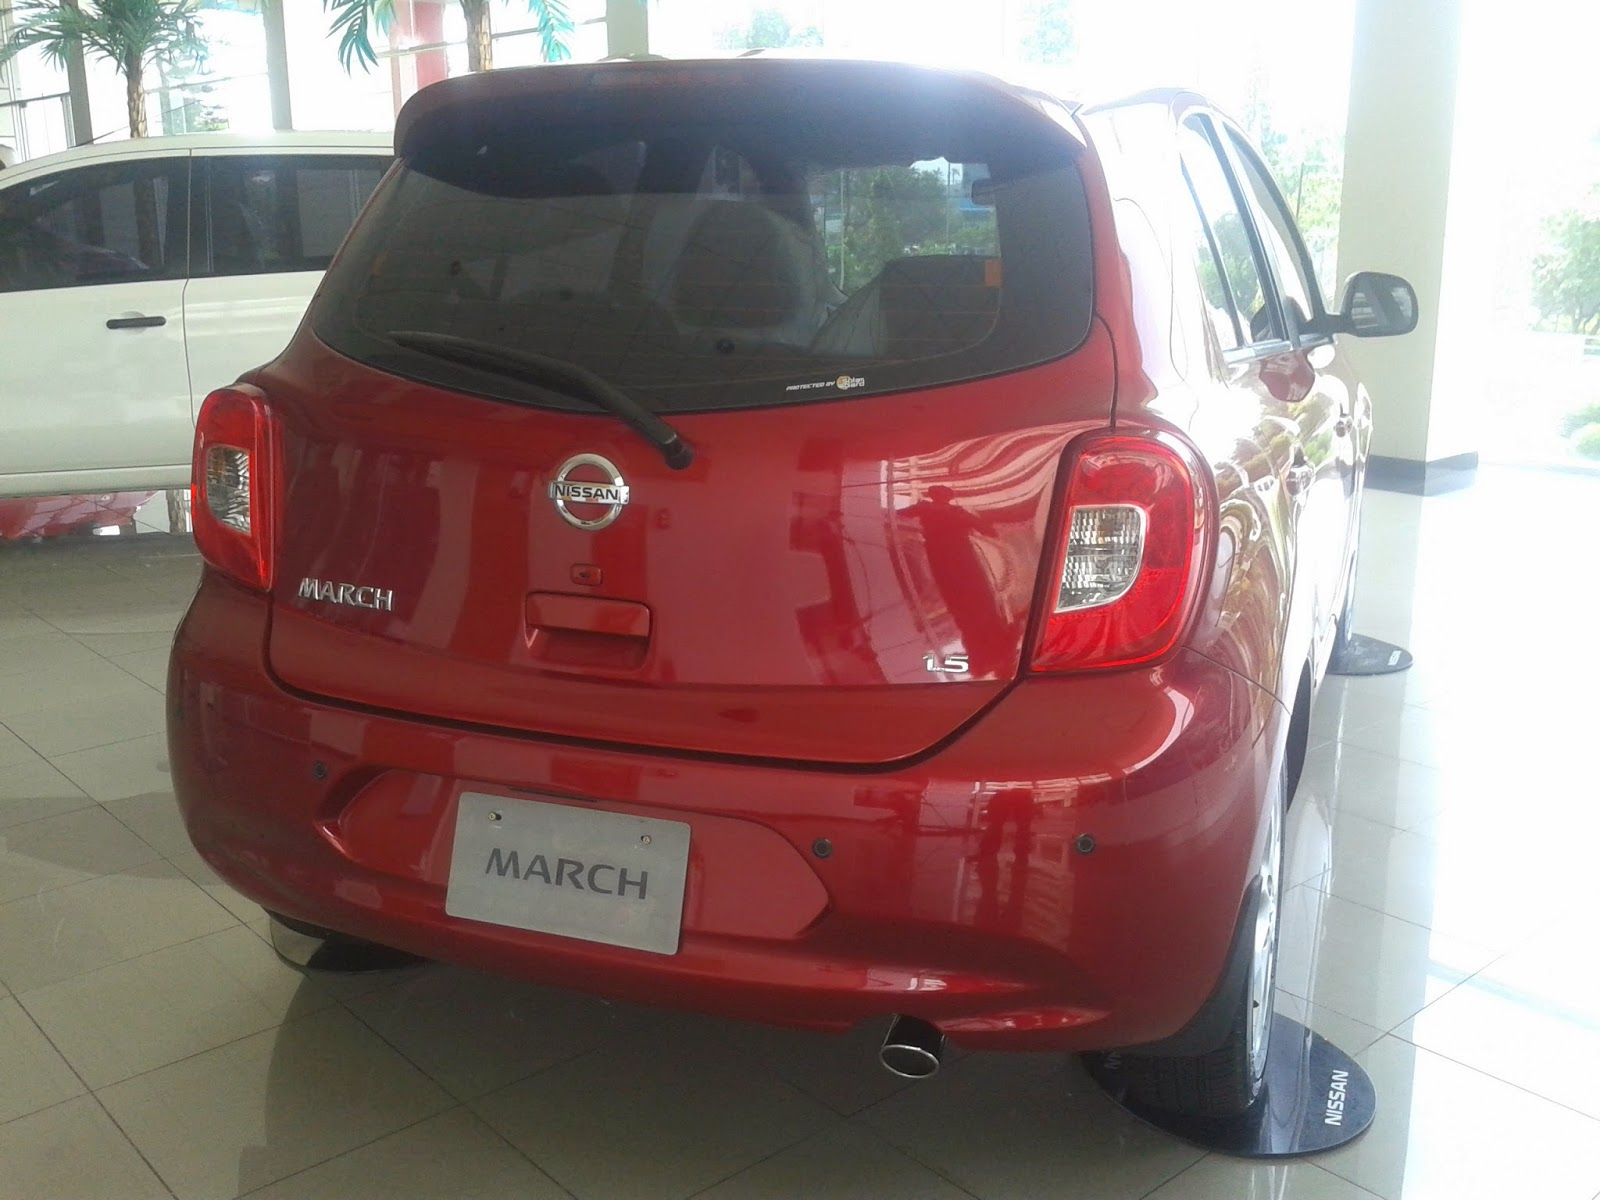 Eksterior Nissan March Merah